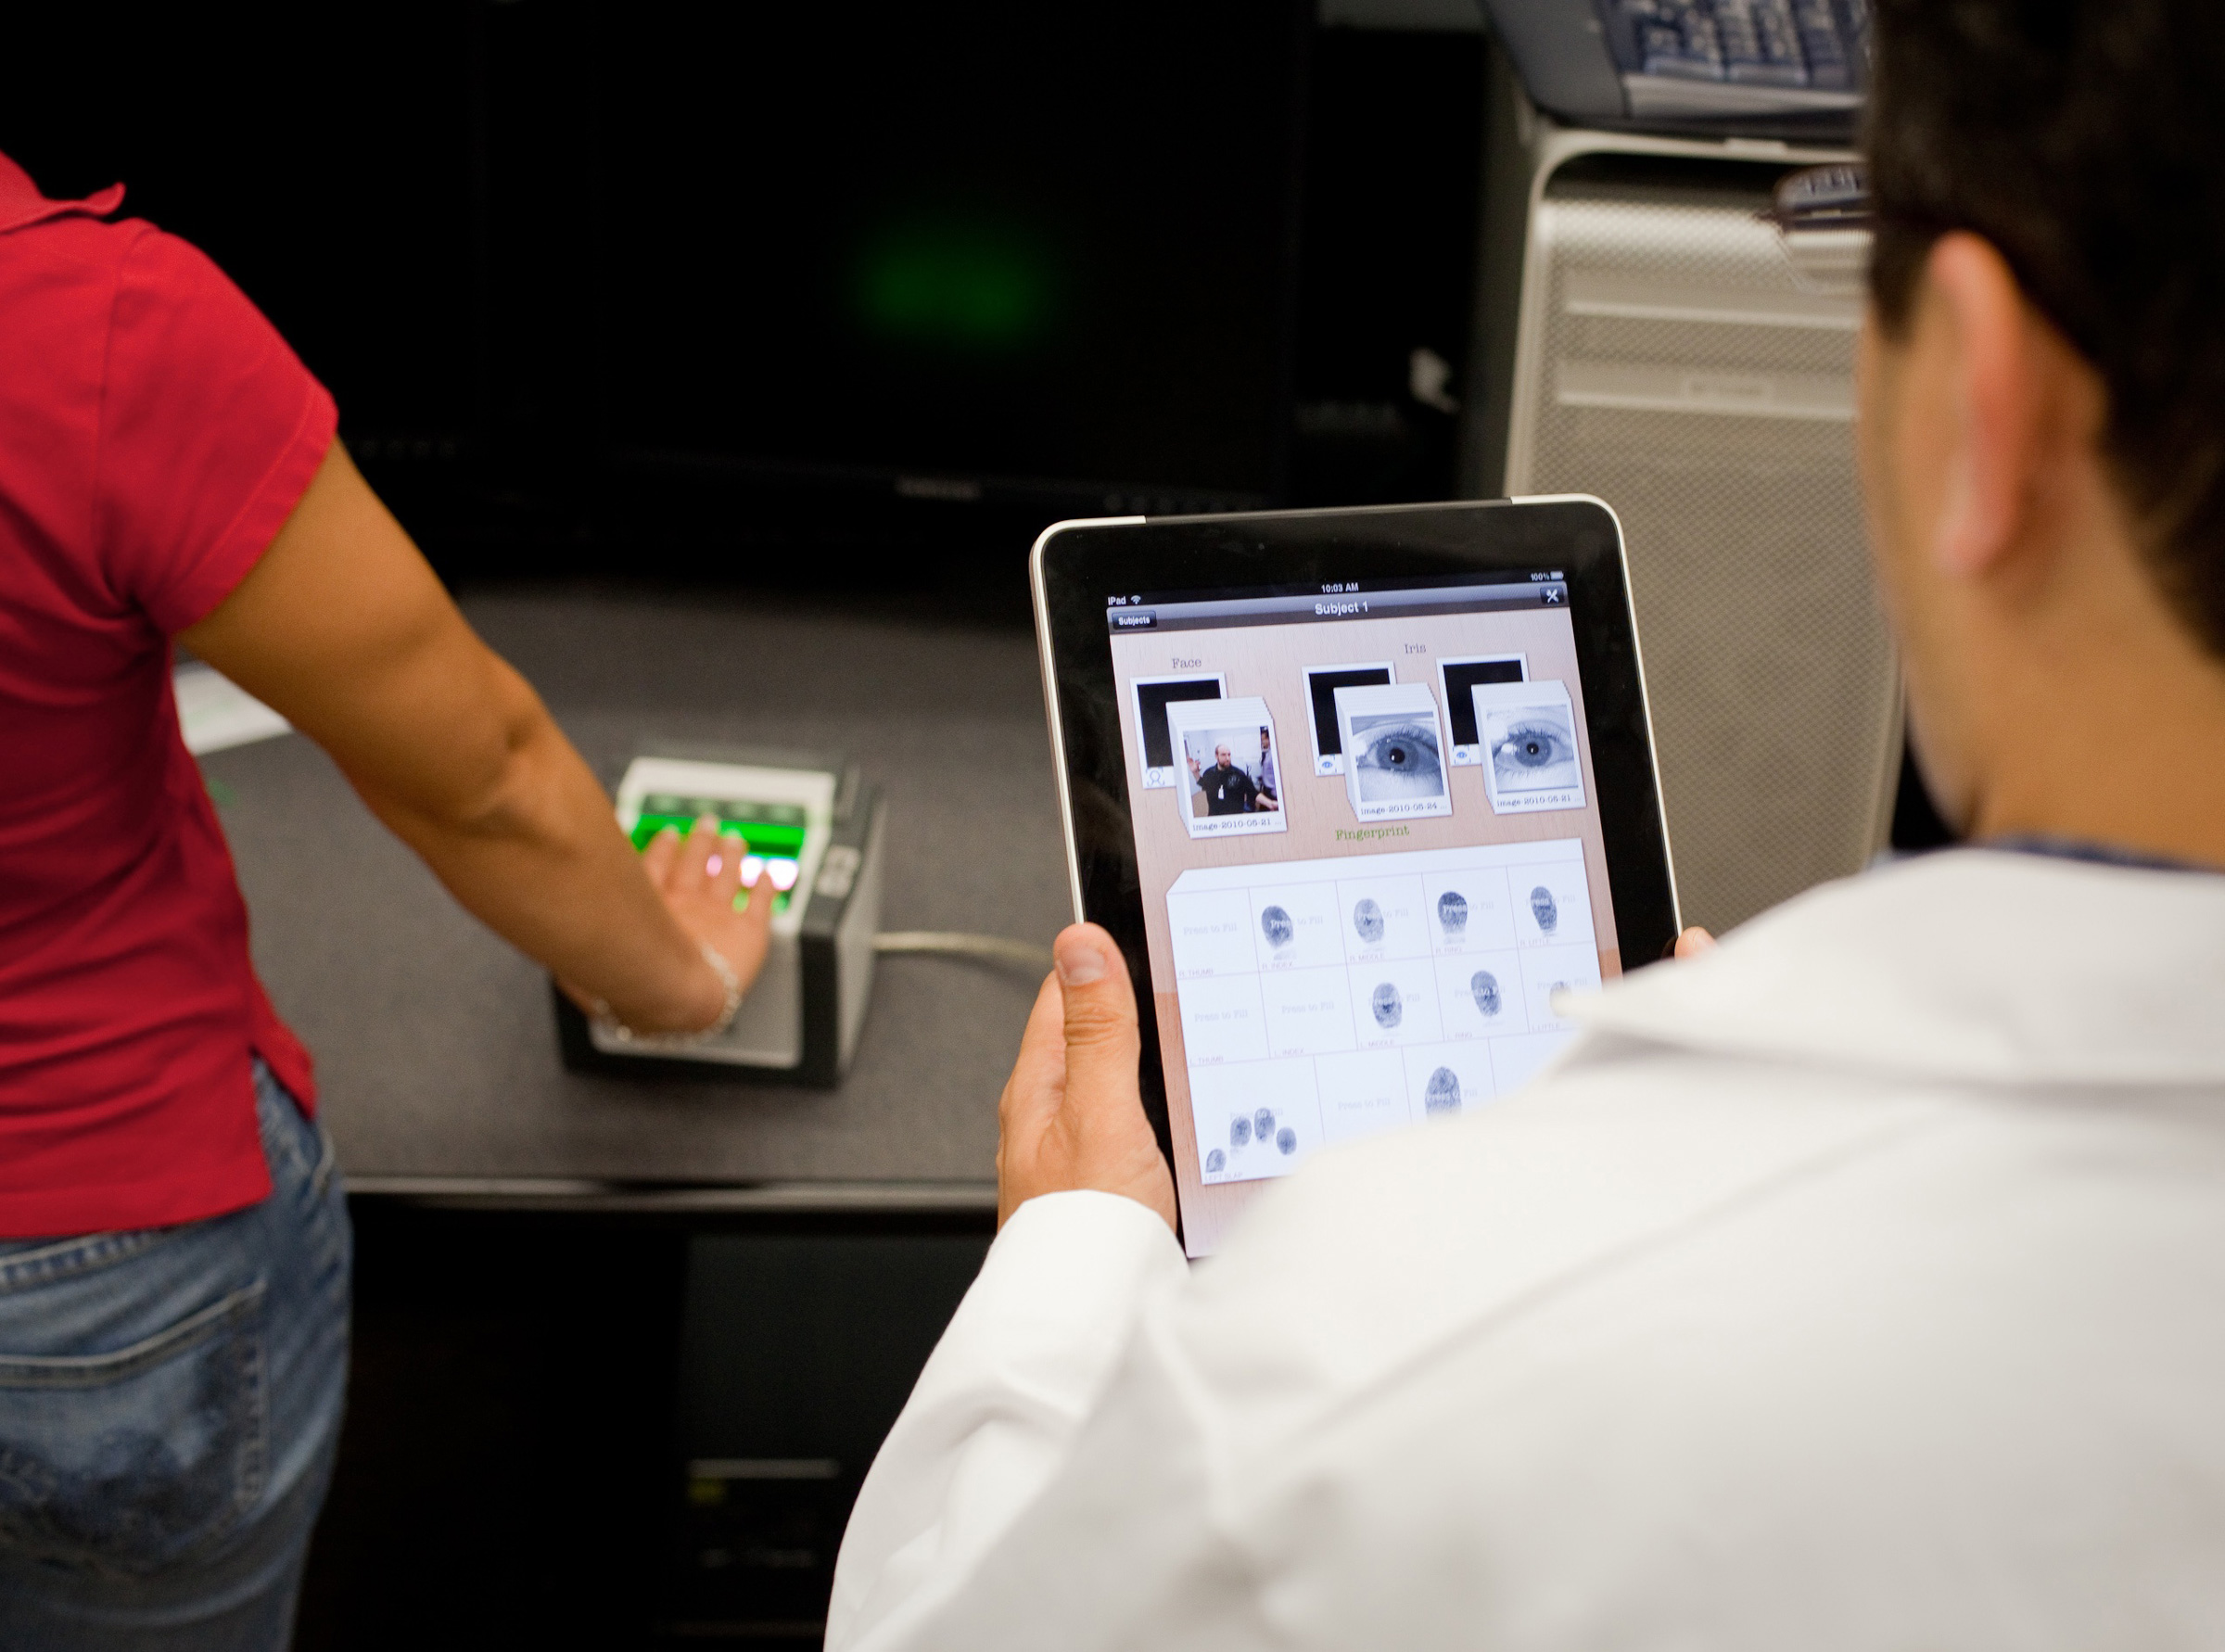 a white person holds a tablet that showcases the fingerprints of a woman of color whose hand is on top of a green scanner